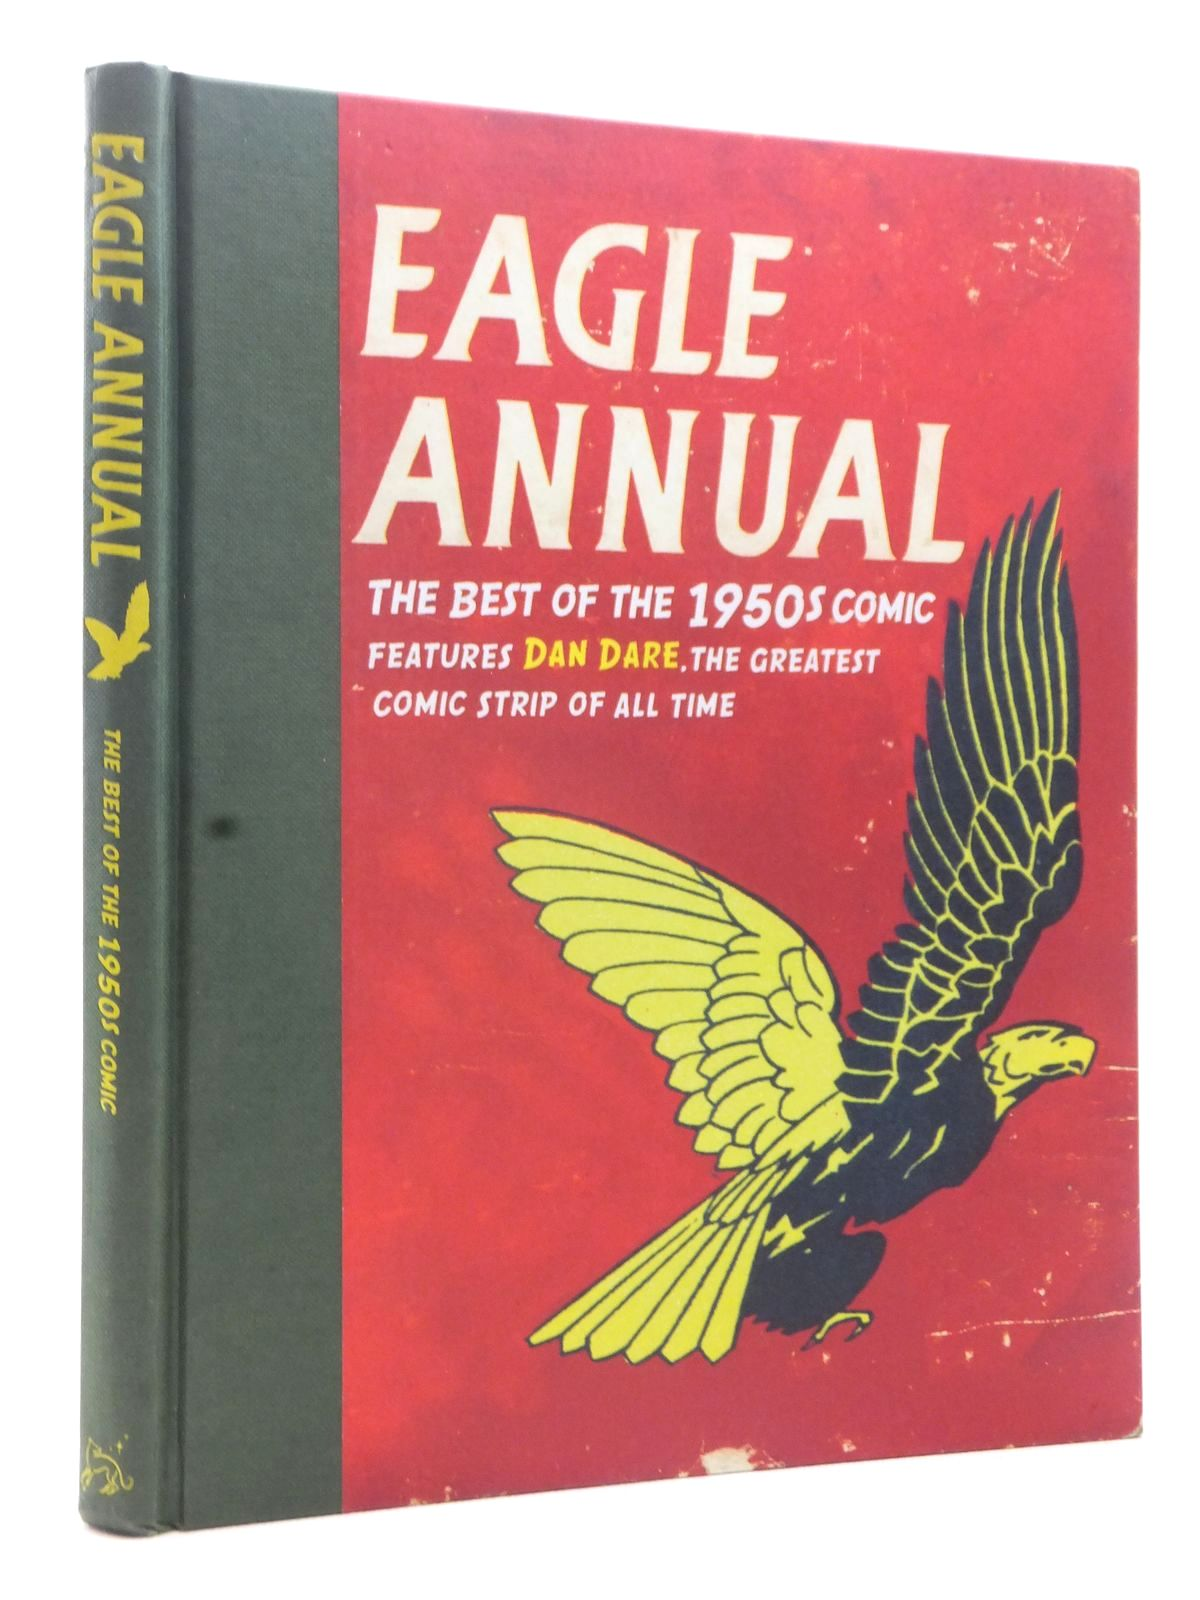 Photo of EAGLE ANNUAL - THE BEST OF THE 1950S COMIC written by Tatarsky, Daniel published by Orion Books (STOCK CODE: 1815473)  for sale by Stella & Rose's Books